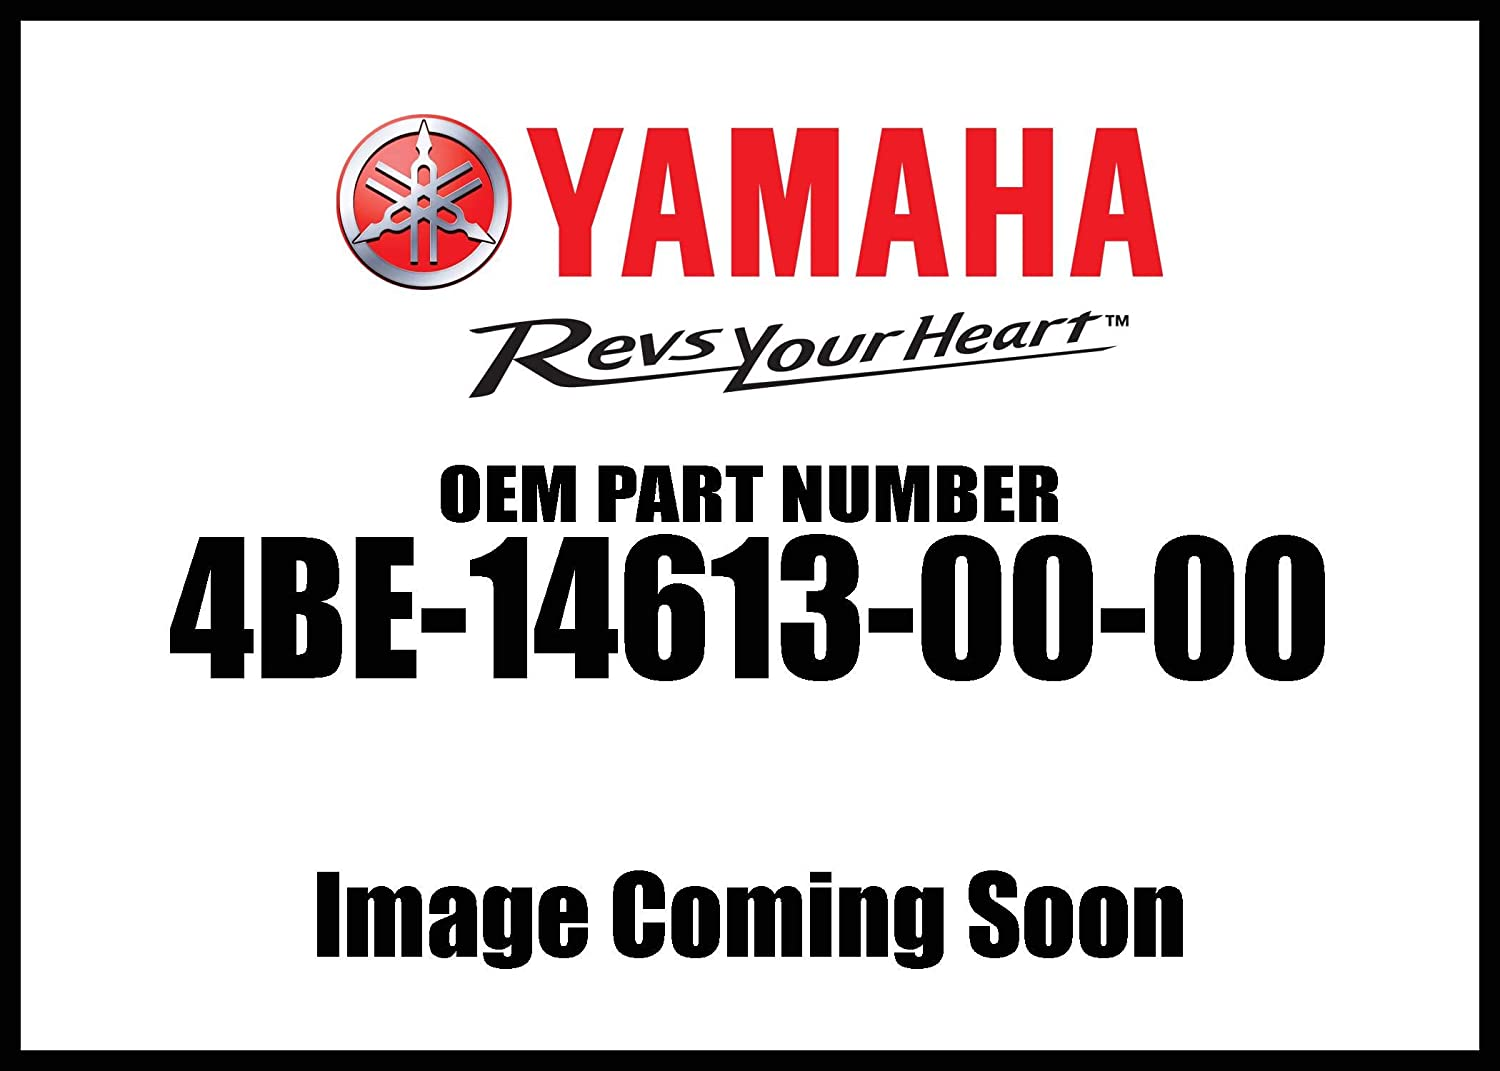 Yamaha 4BE-14613-00-00 GASKET, EXST PIPE; 4BE146130000